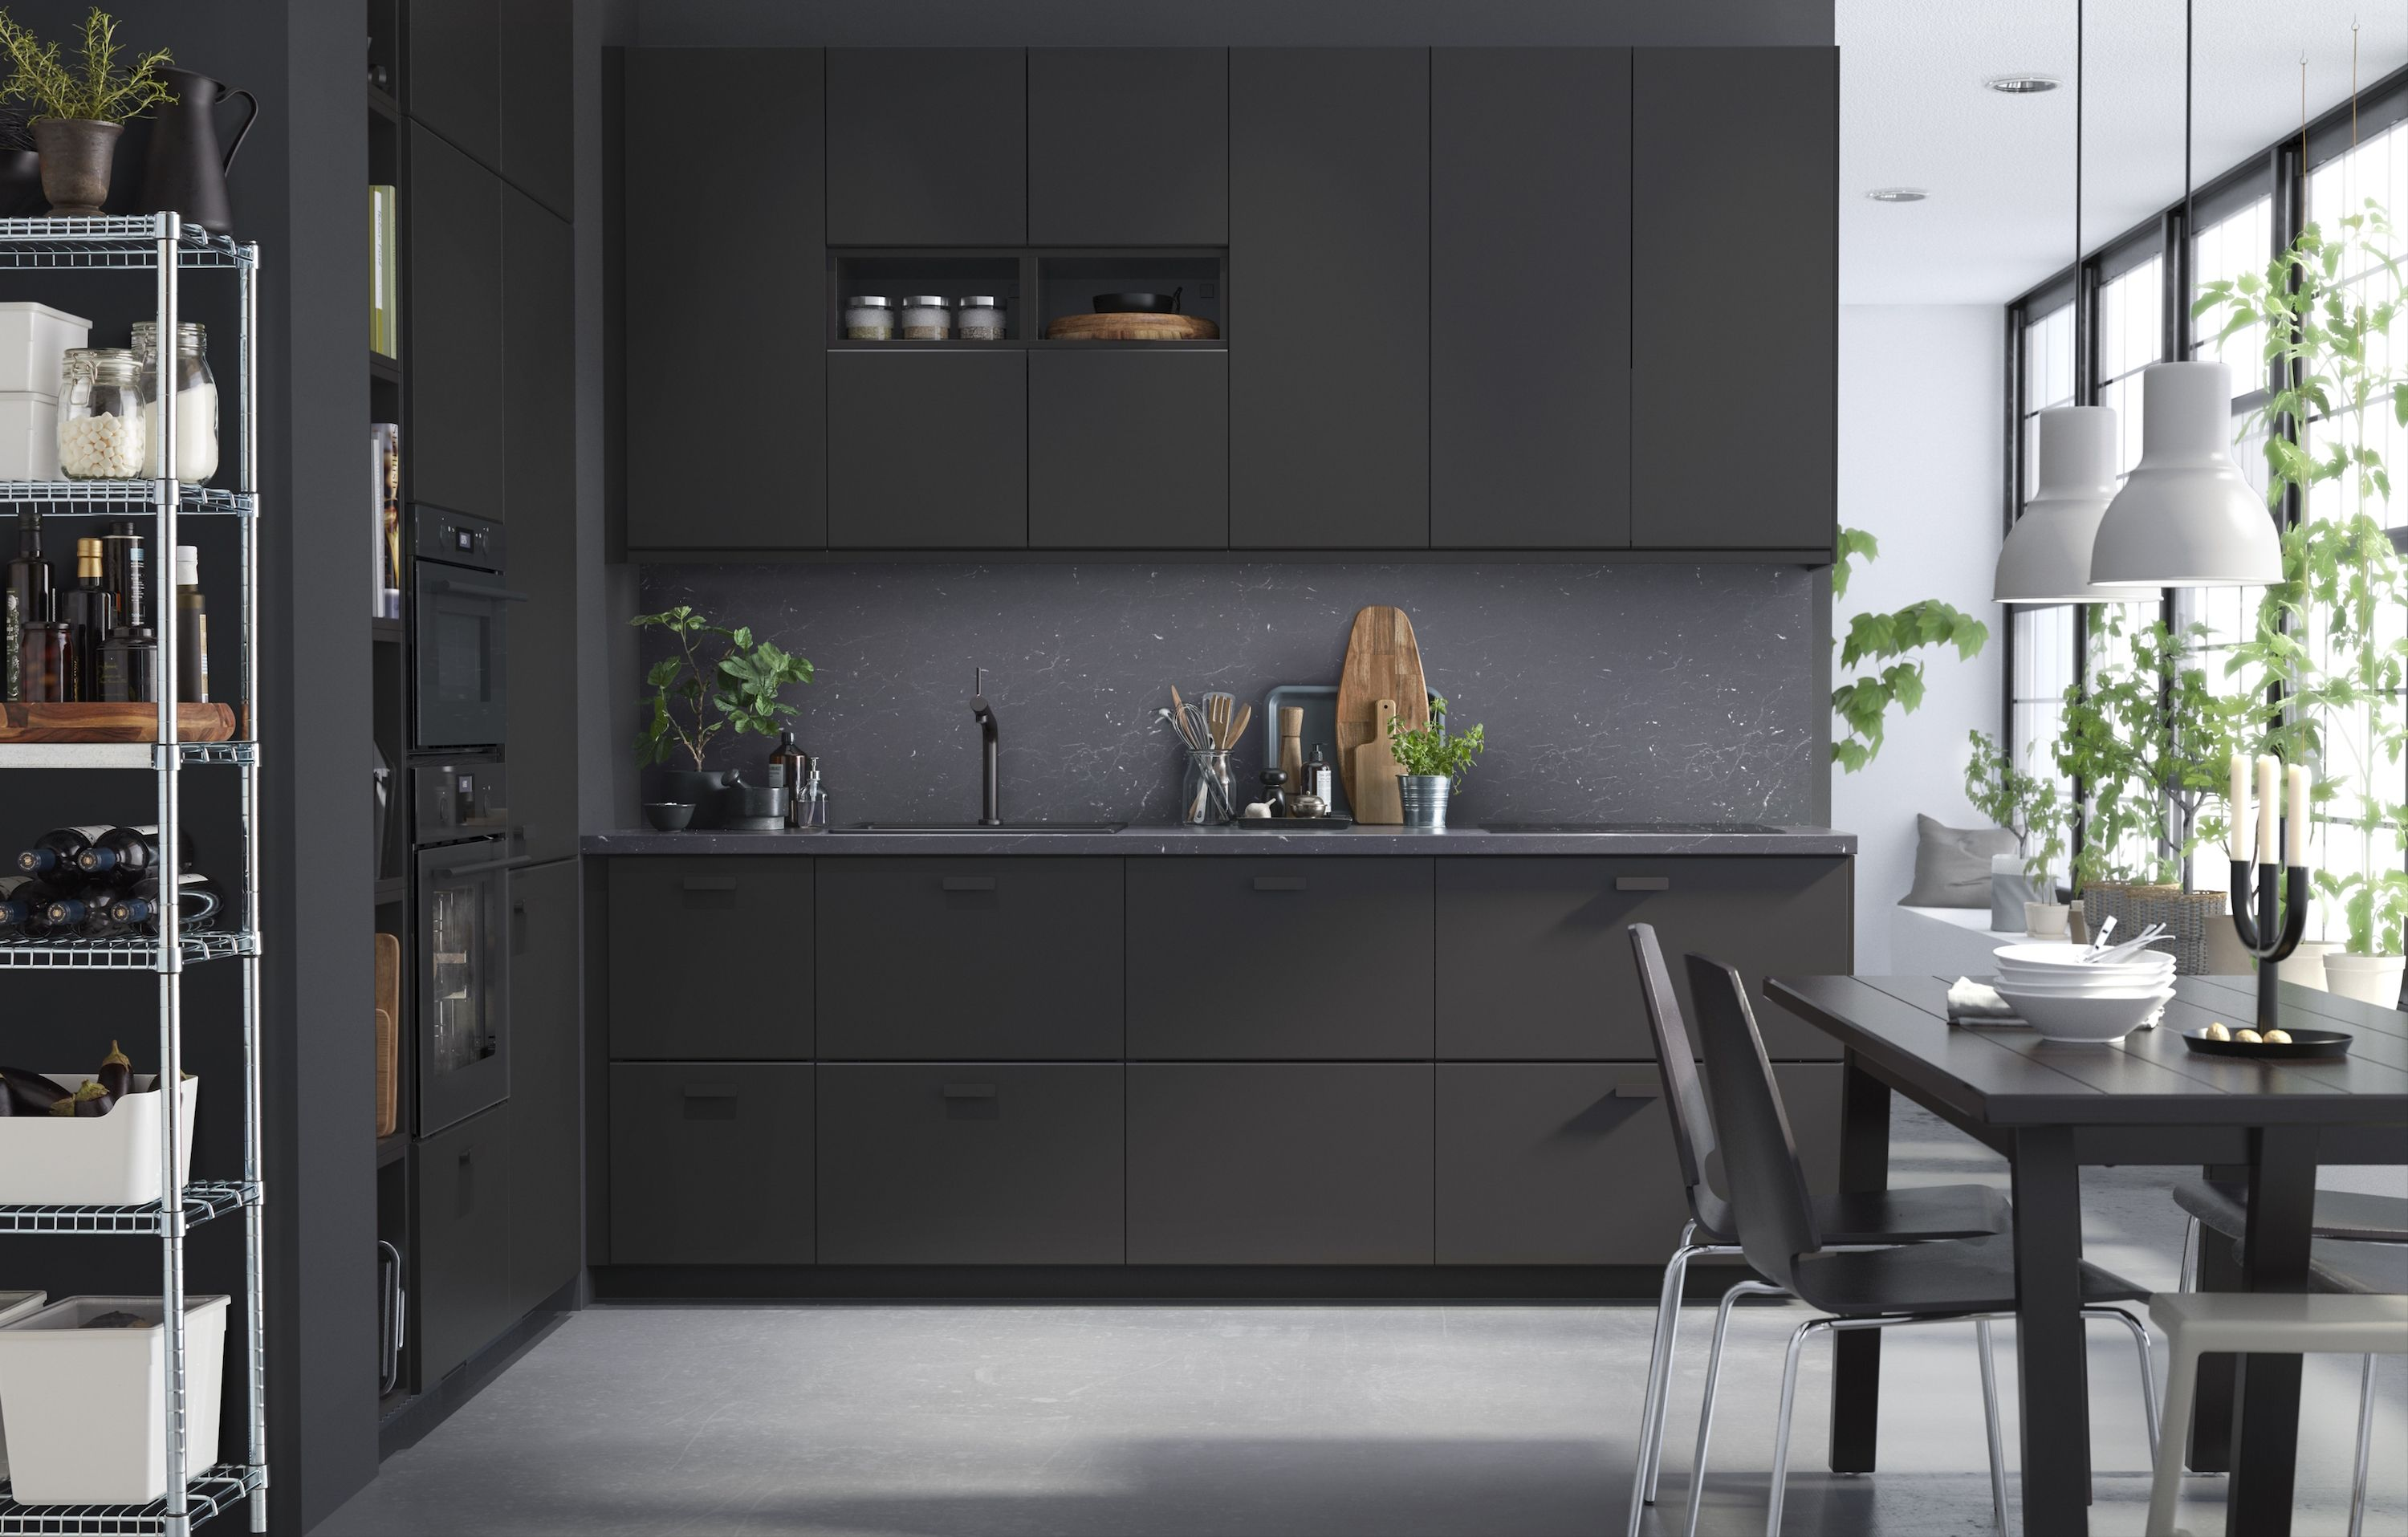 Luxurious Glass Doors Ikea Kitchen Cabinets Made From Recycled Materials Black Ikea Cabinets Black Kitchen Cabinets Appliances Black Kitchen Cabinets houzz-02 Black Kitchen Cabinets